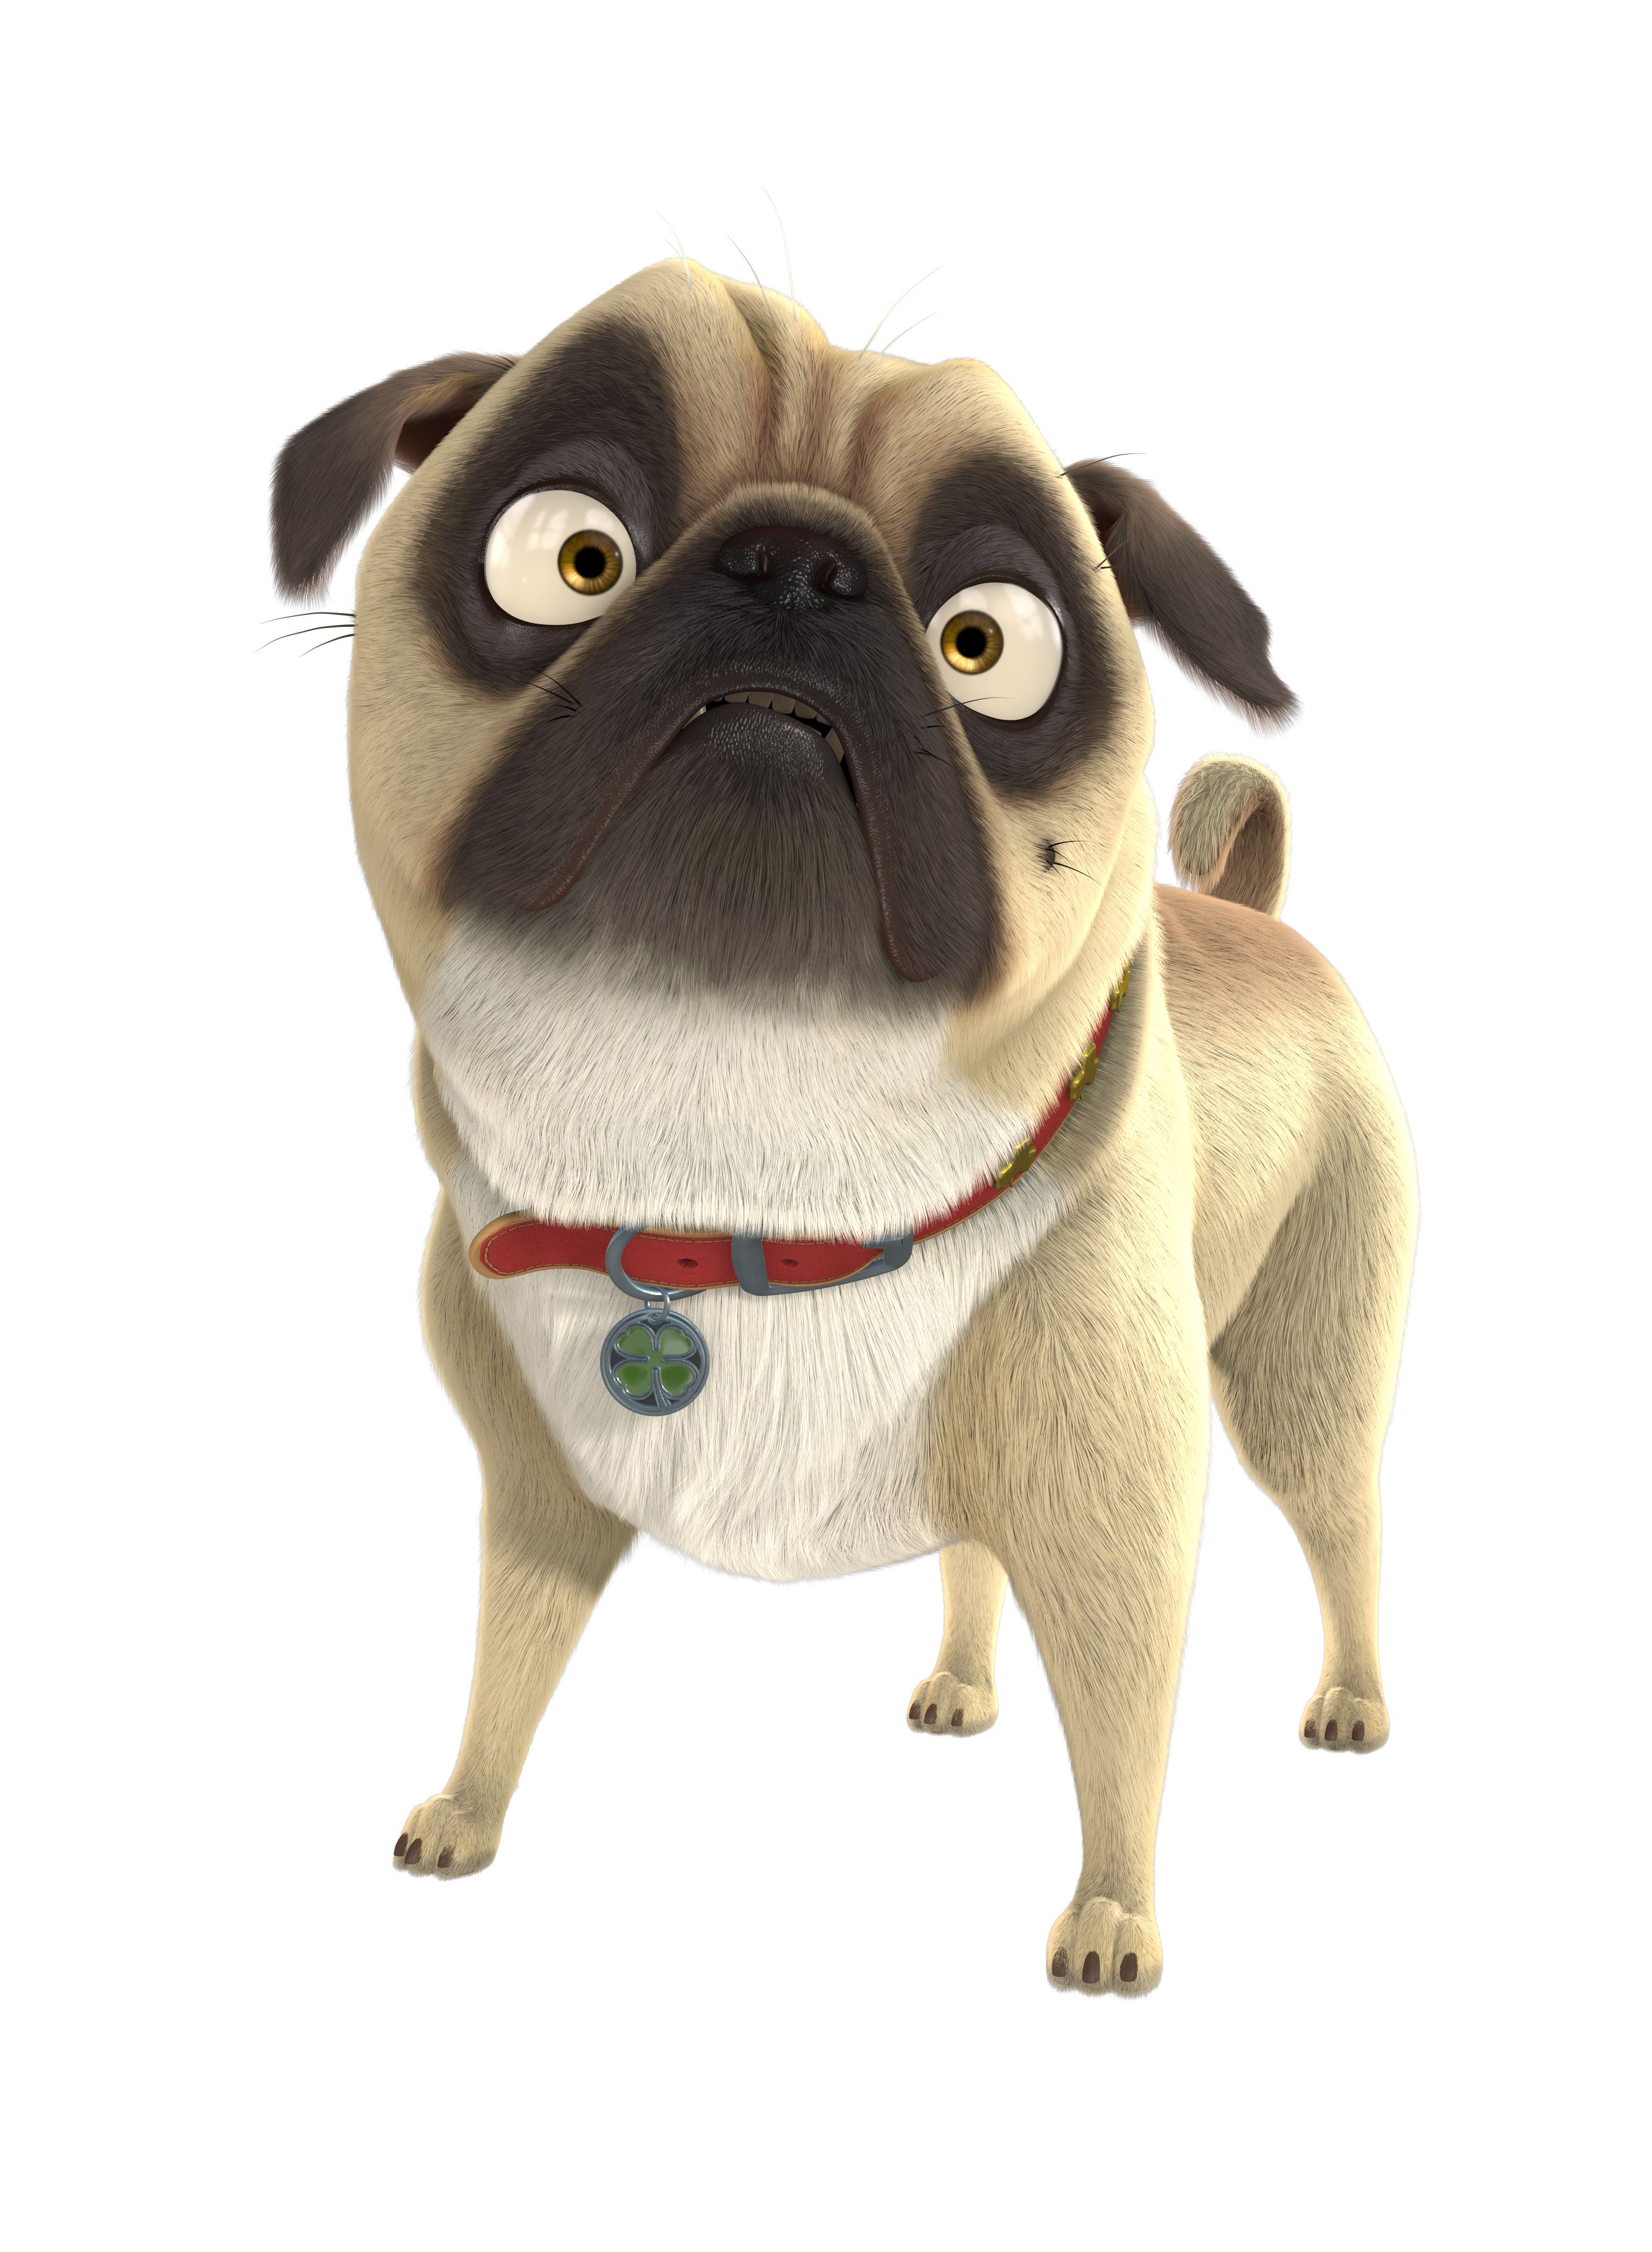 Precious The Pug The Nut Job Was Hilarious Only Because Of